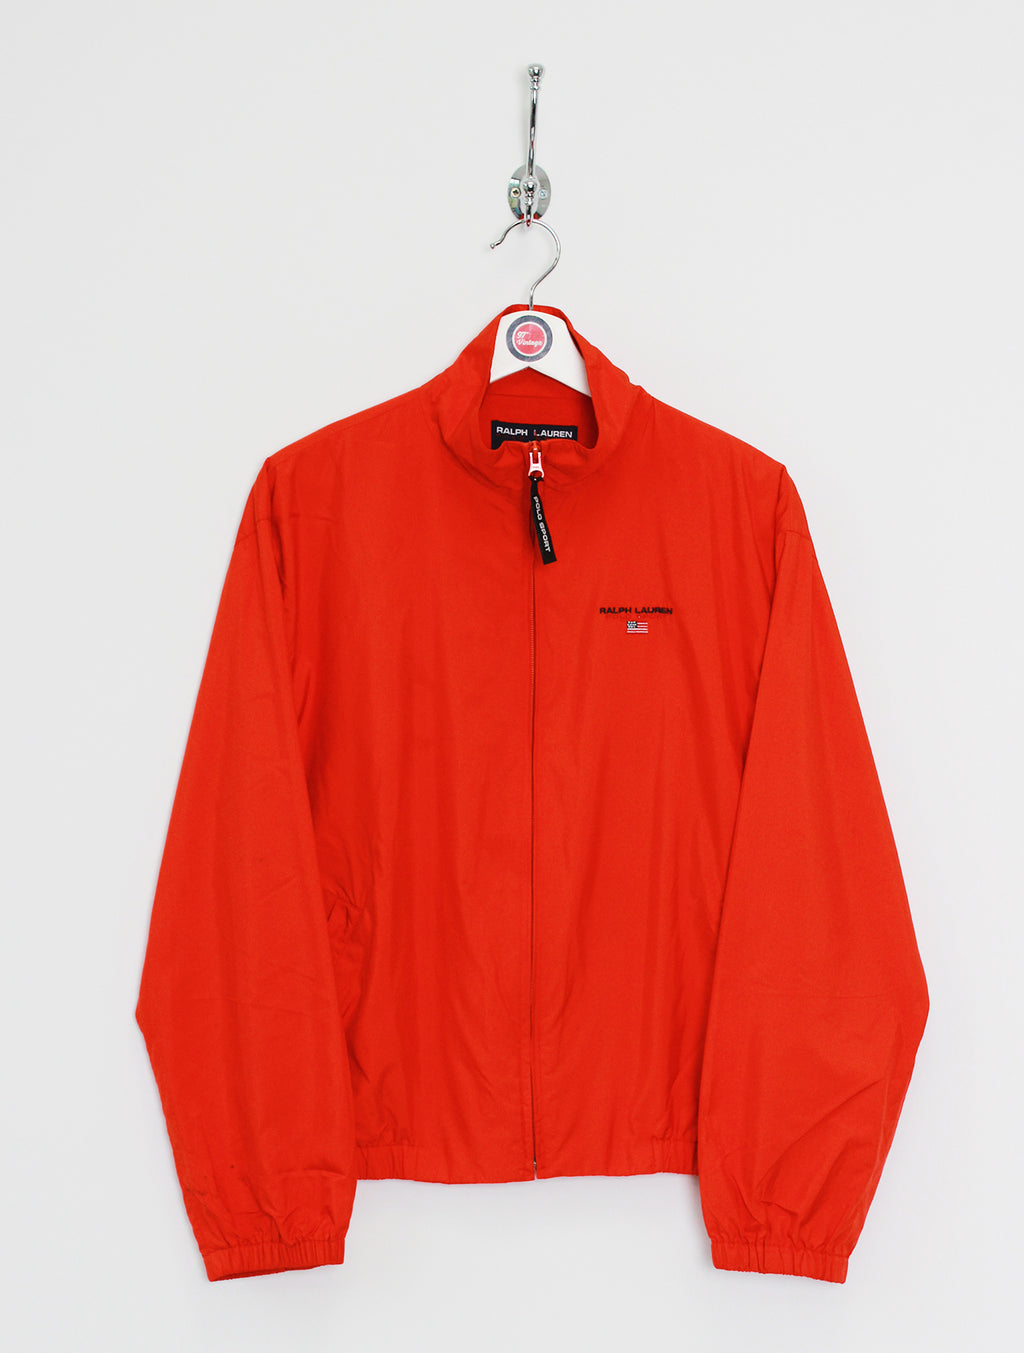 Ralph Lauren Polo Sport Jacket Orange (M)